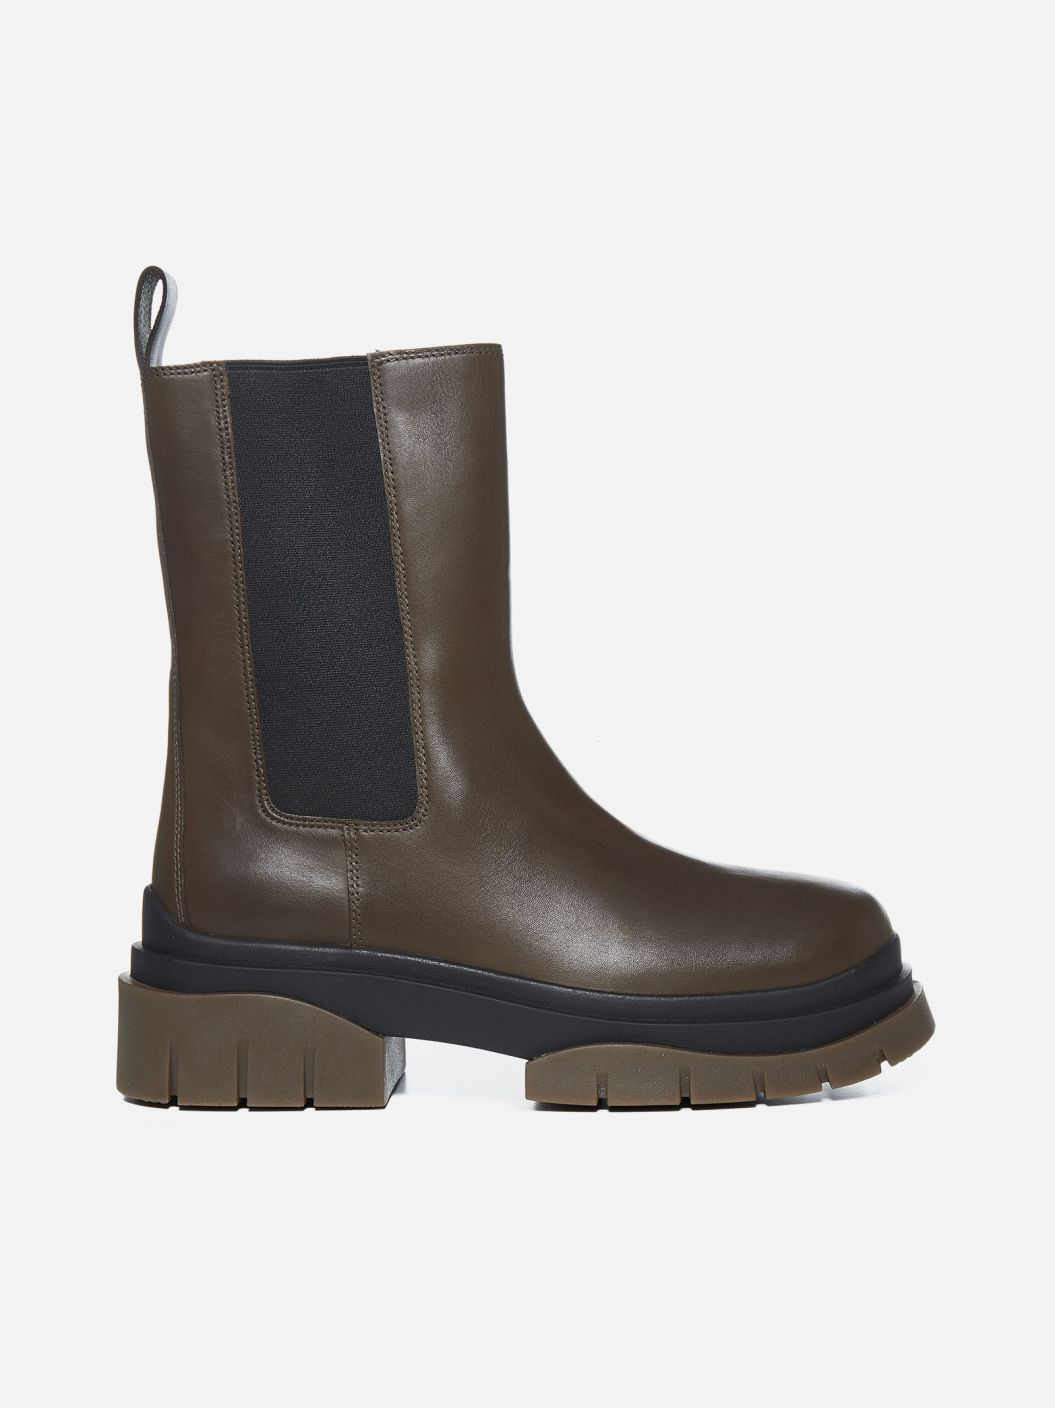 Storm leather Chelsea boots